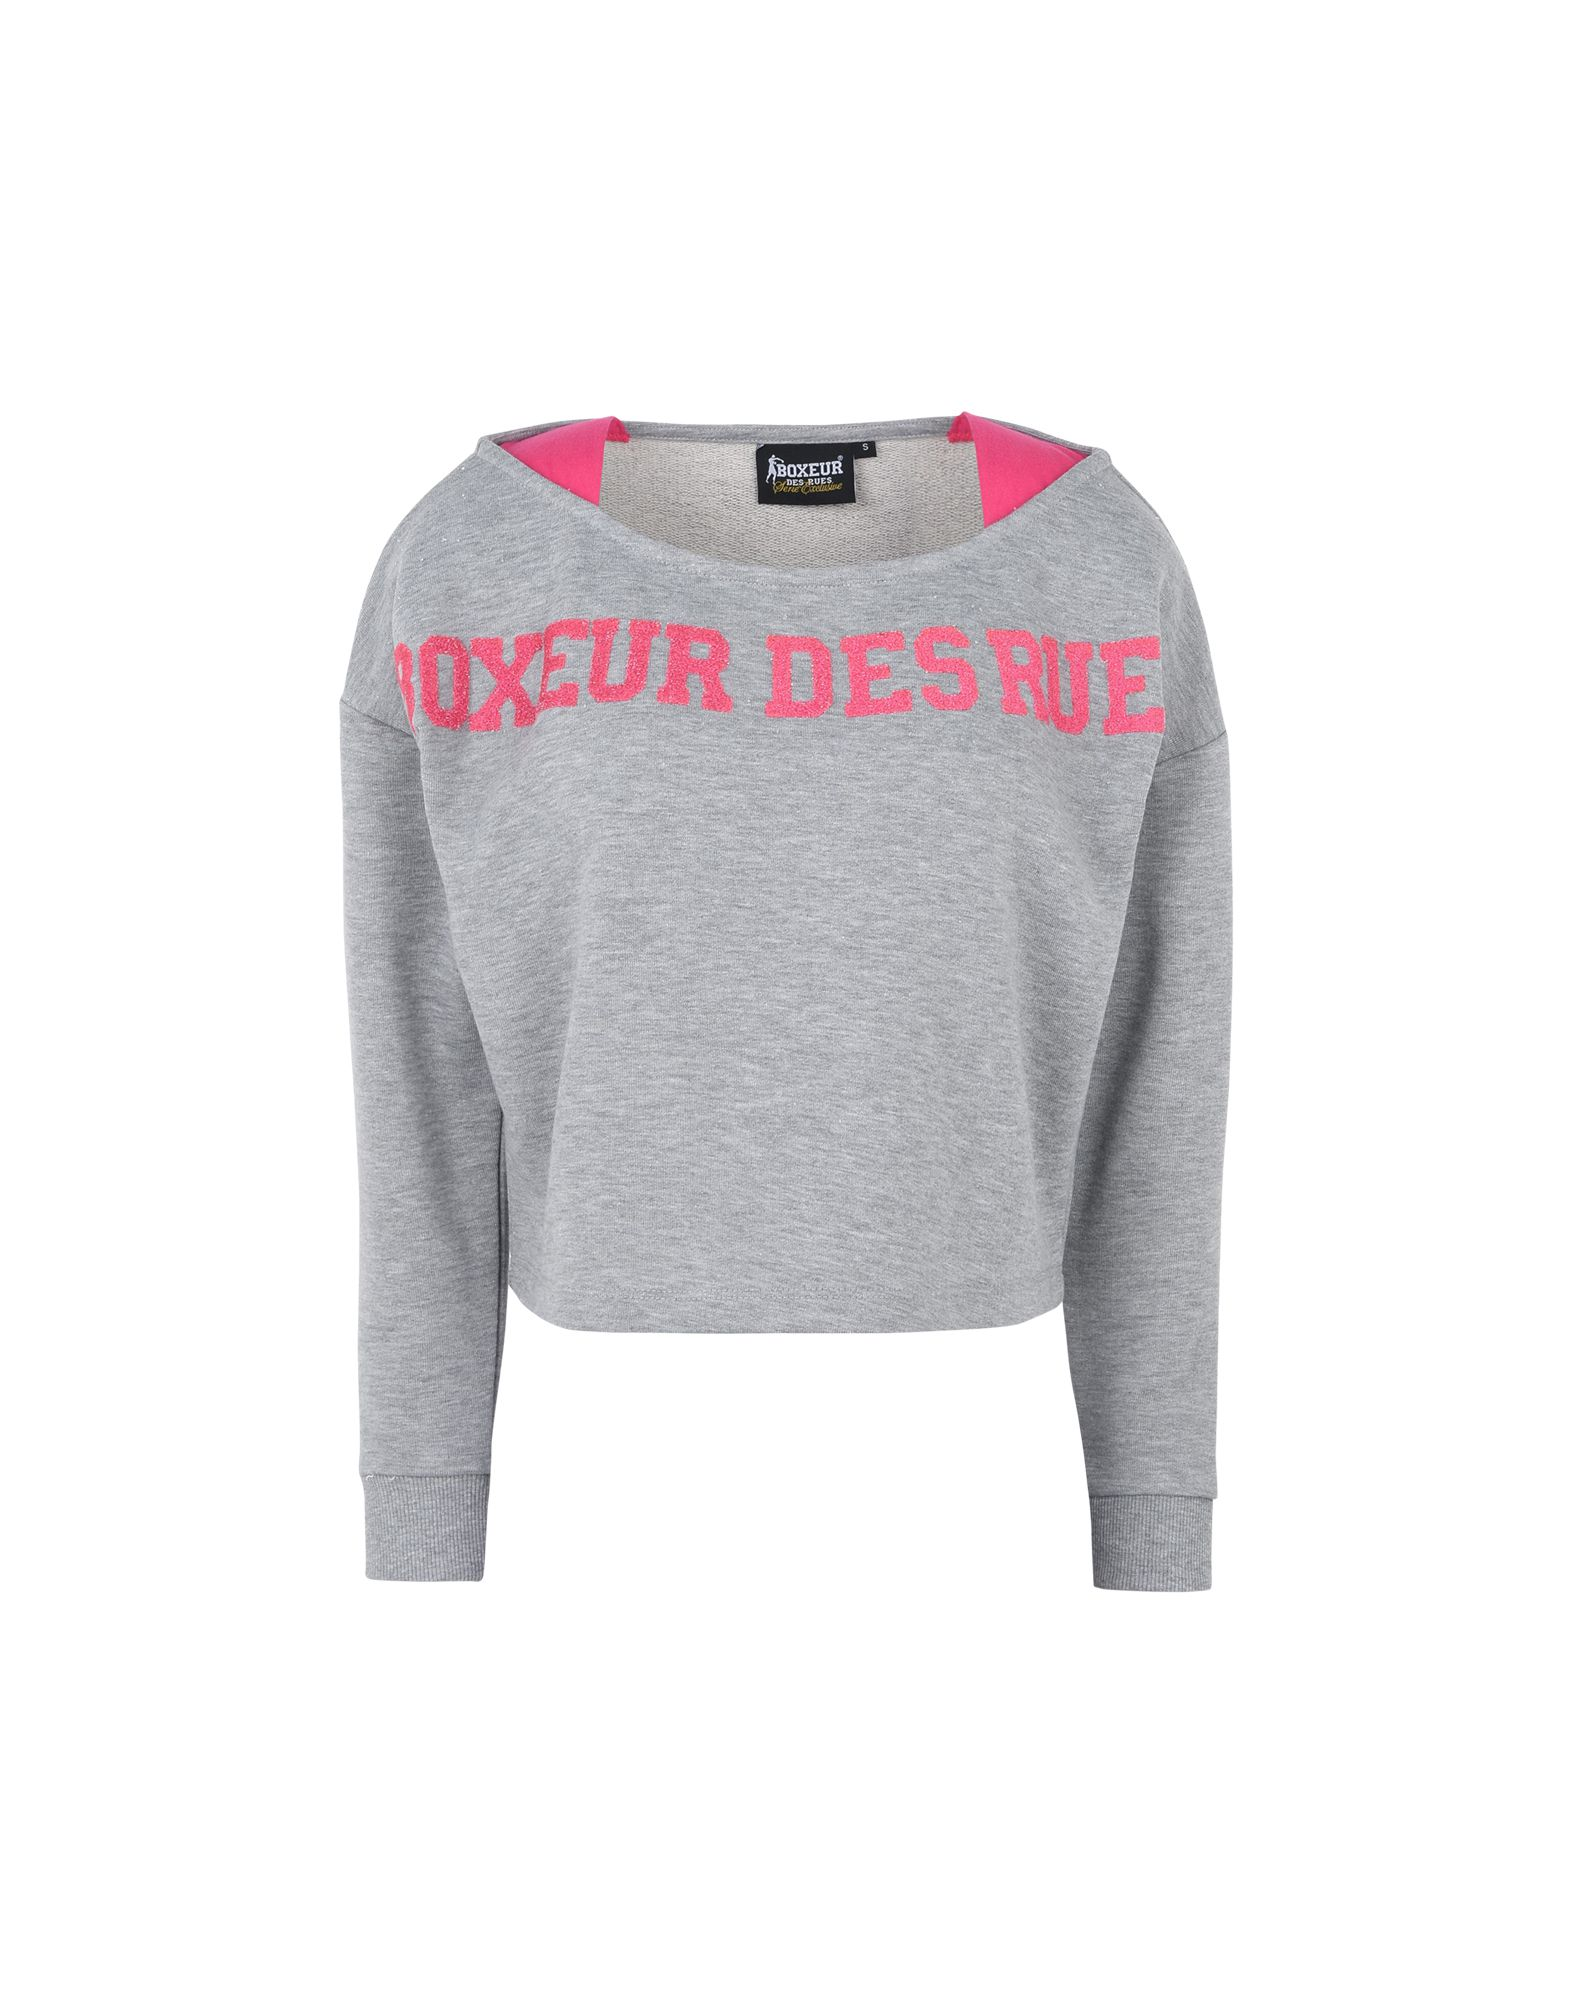 BOXEUR DES RUES Technical Sweatshirts And Sweaters in Grey